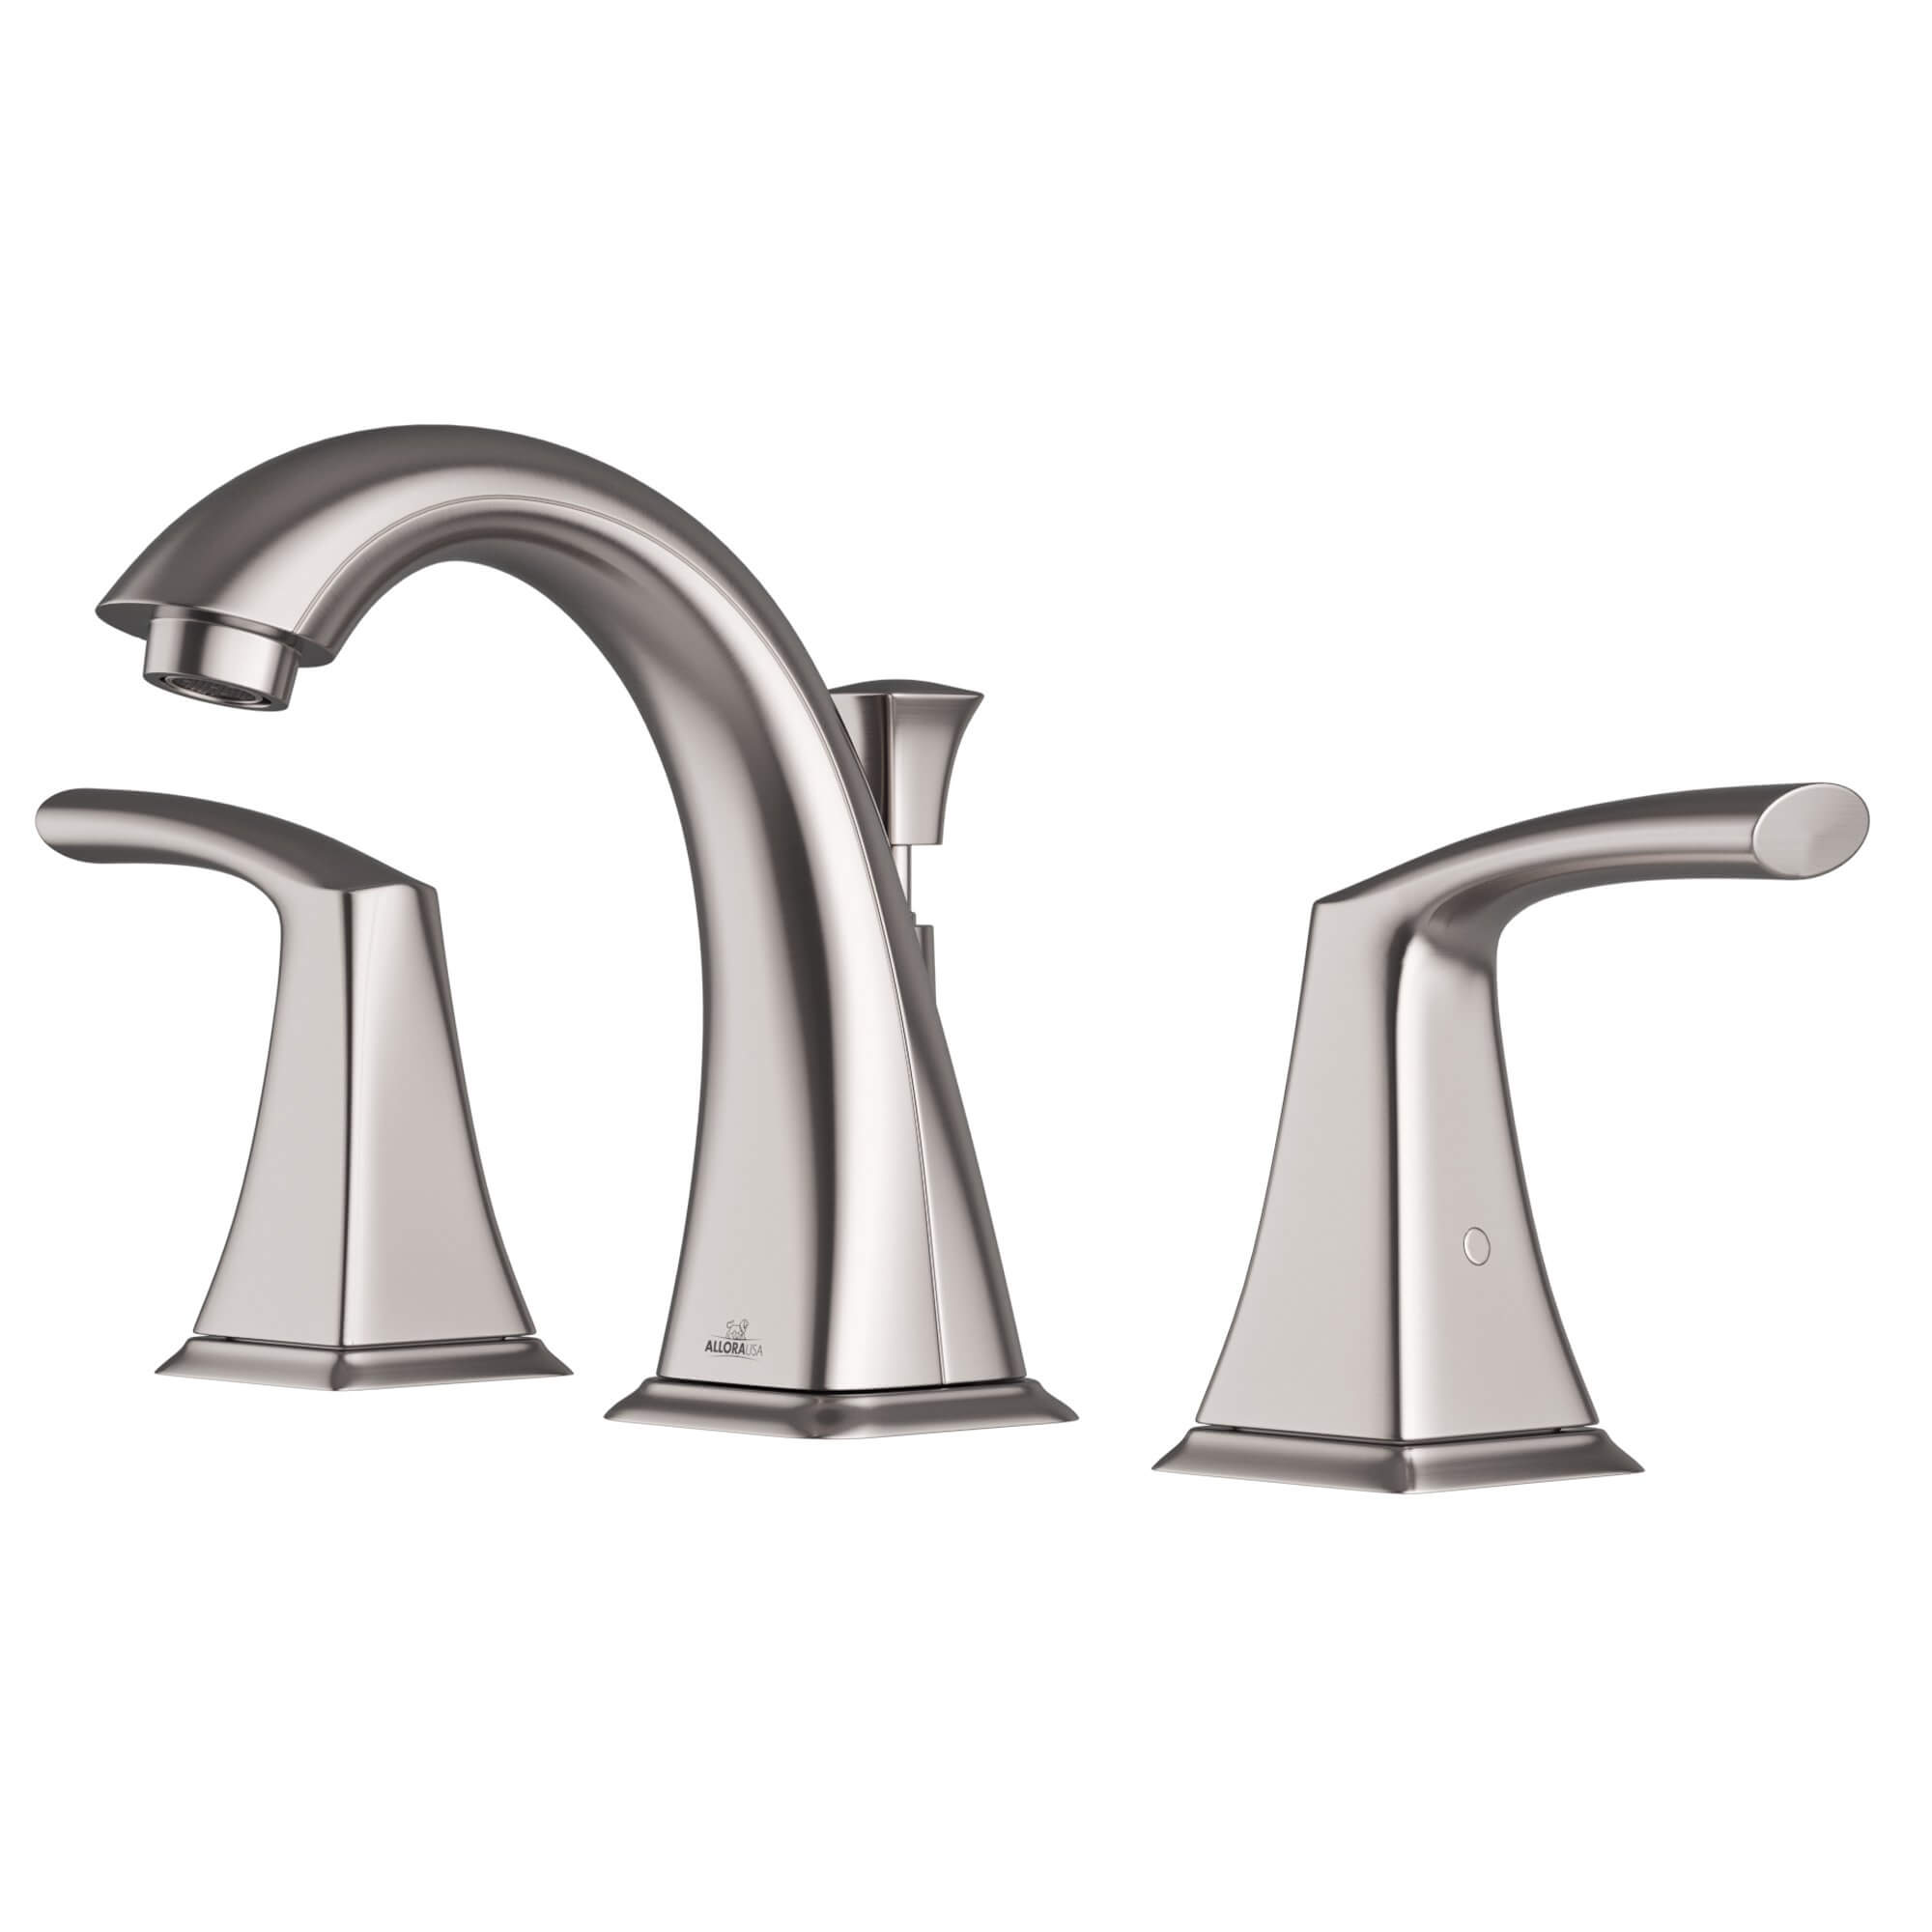 a 6570 bn two handle lavatory faucet